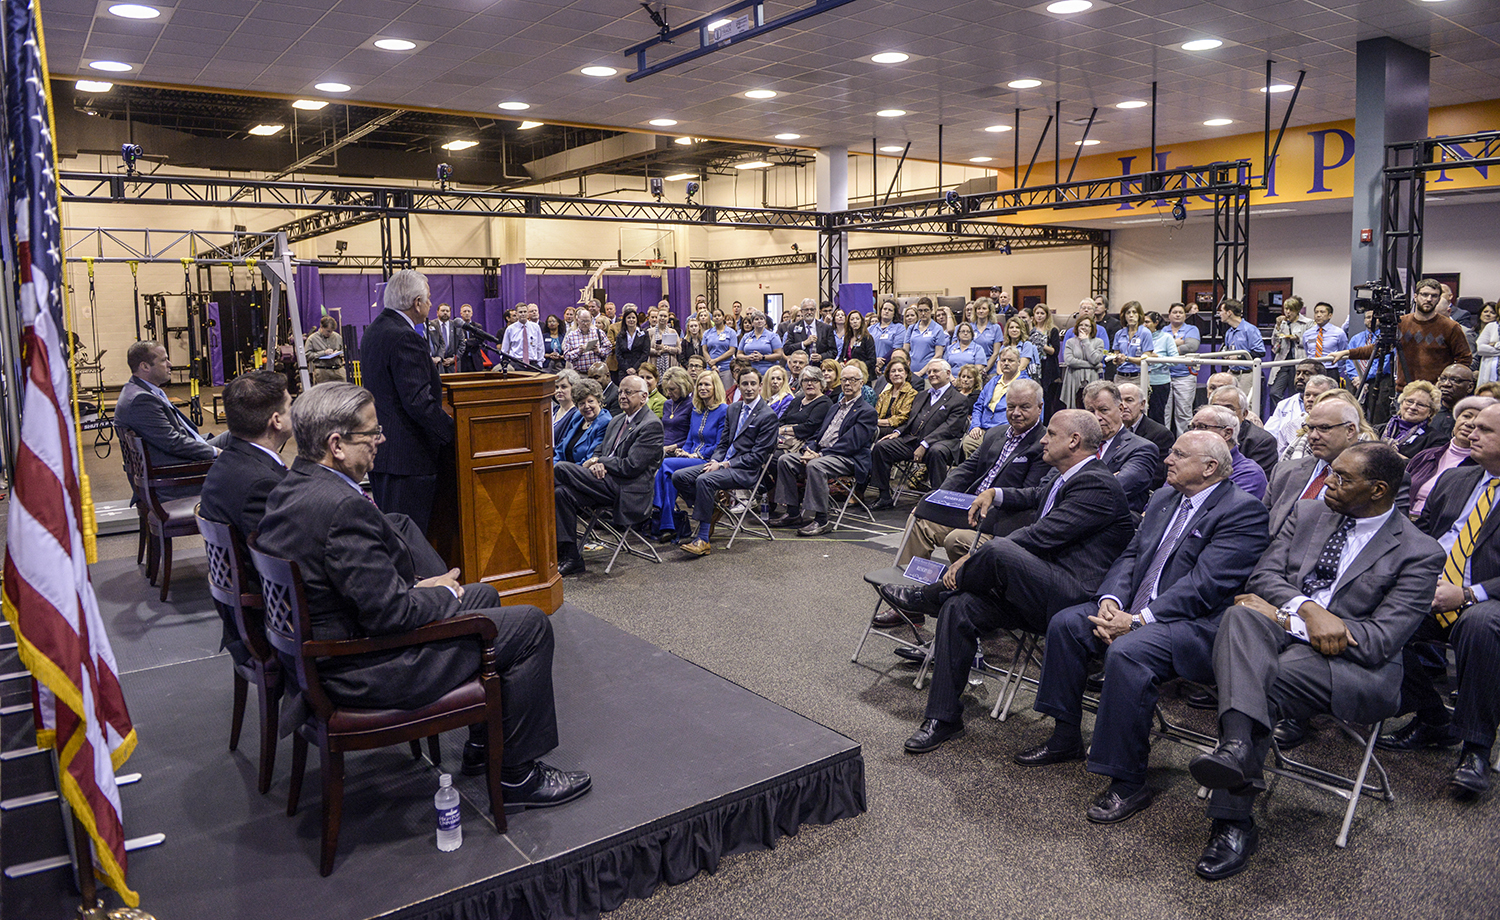 More than 100 community members attended the event in HPU's Human Biomechanics and Physiology Lab, where the clinic will be housed.